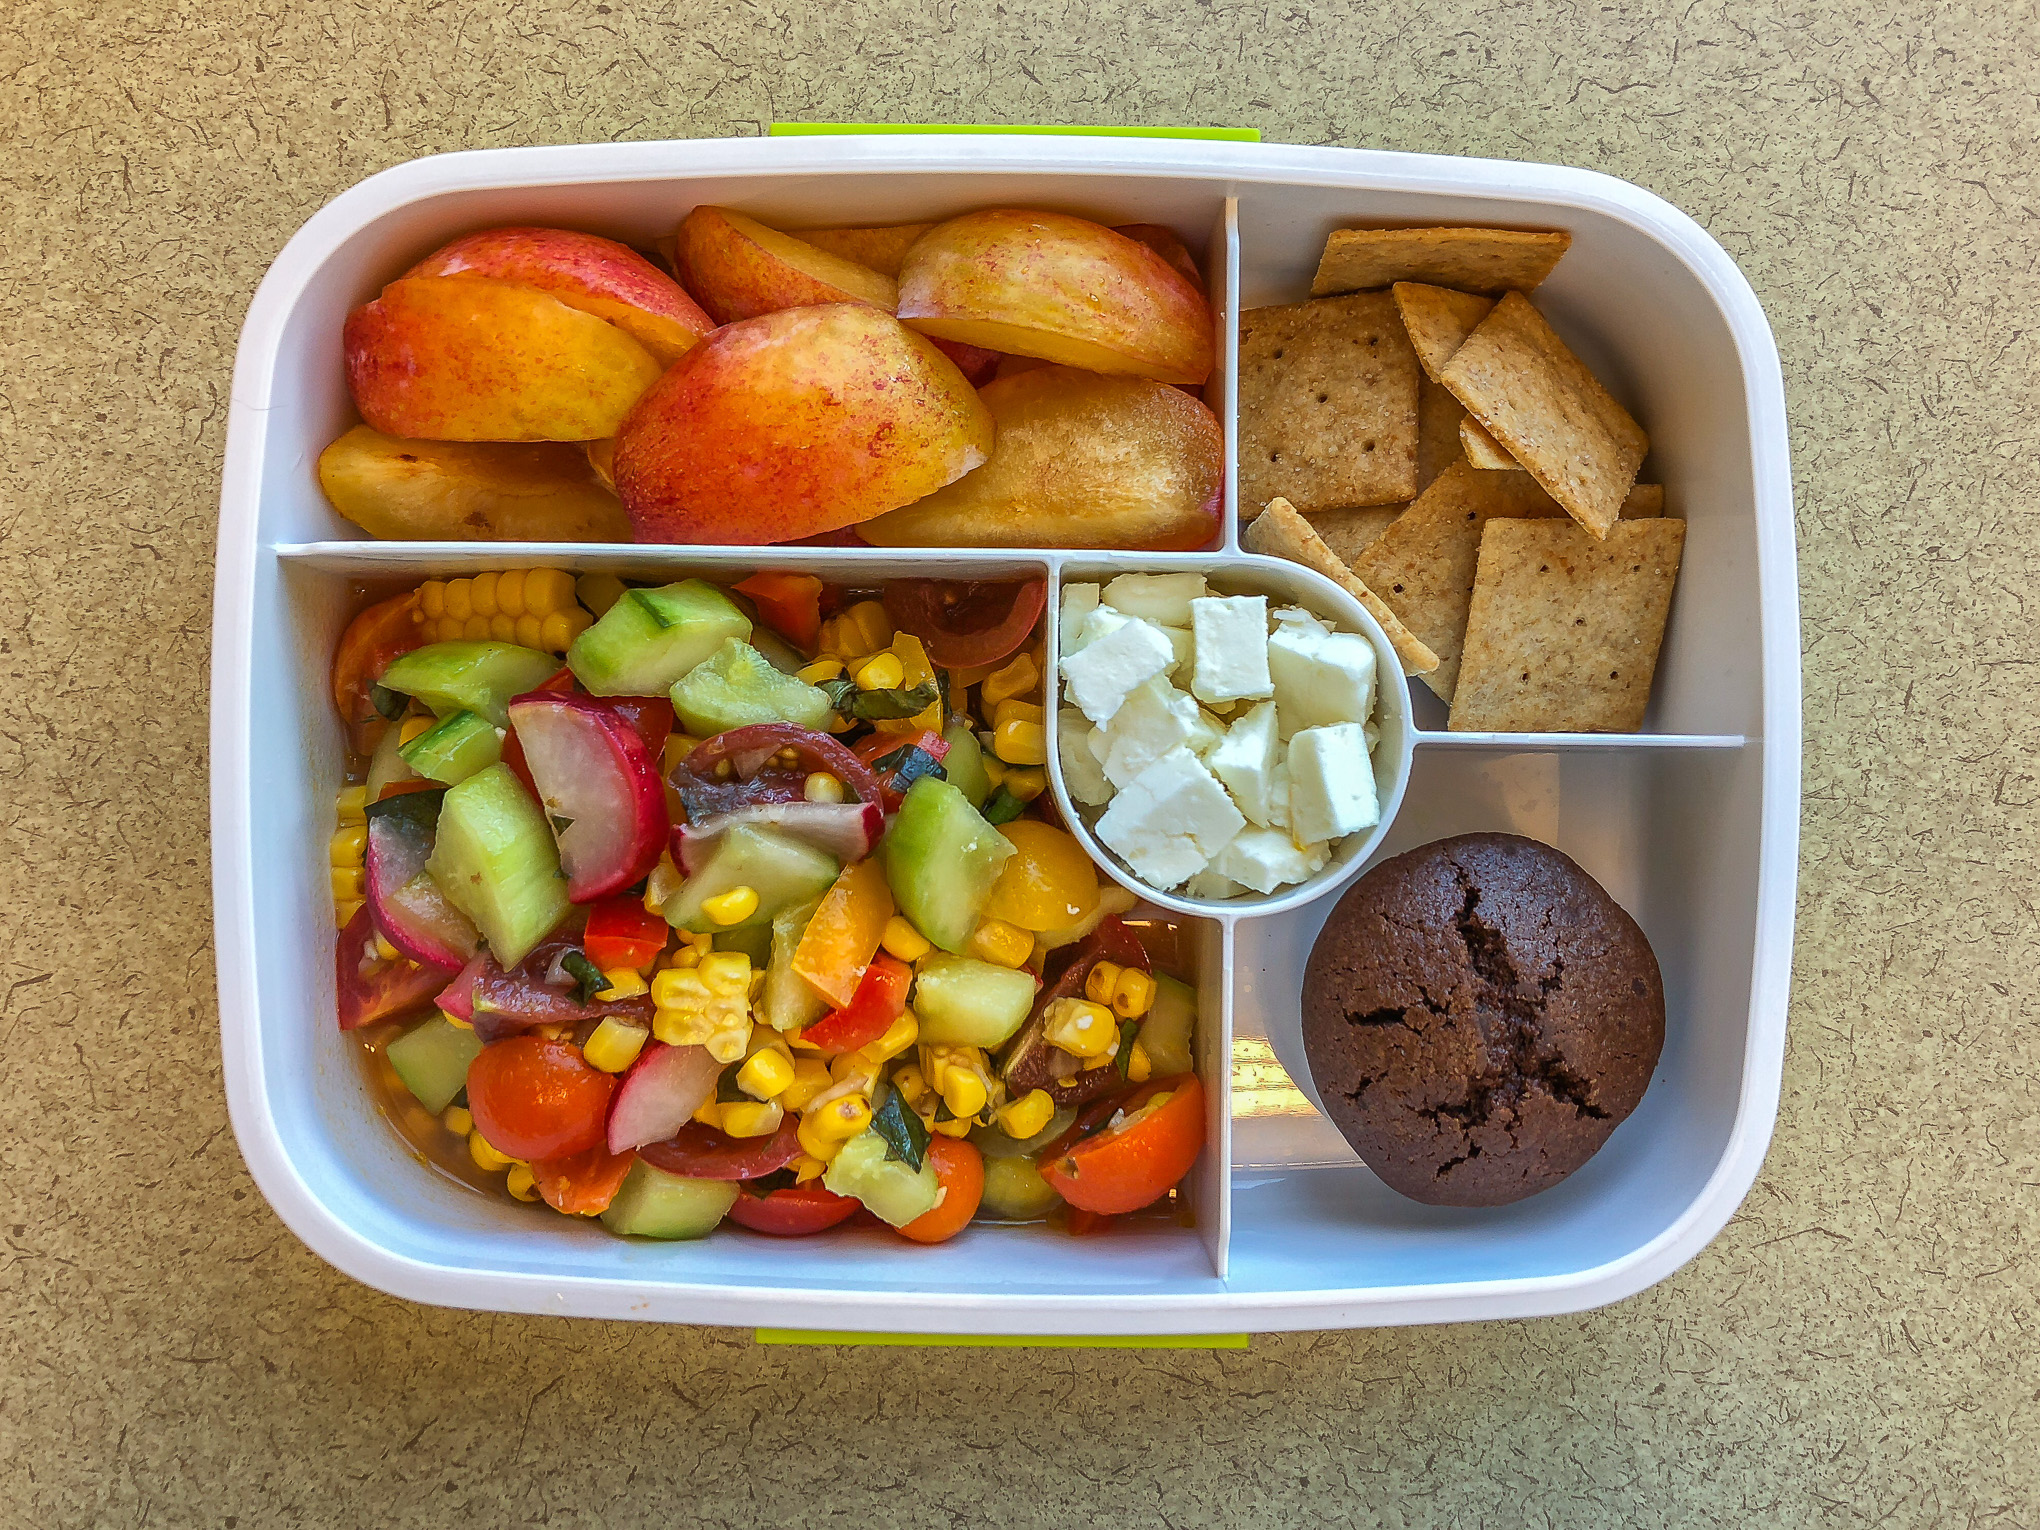 Bento box filled with fruit, crackers and vegetables